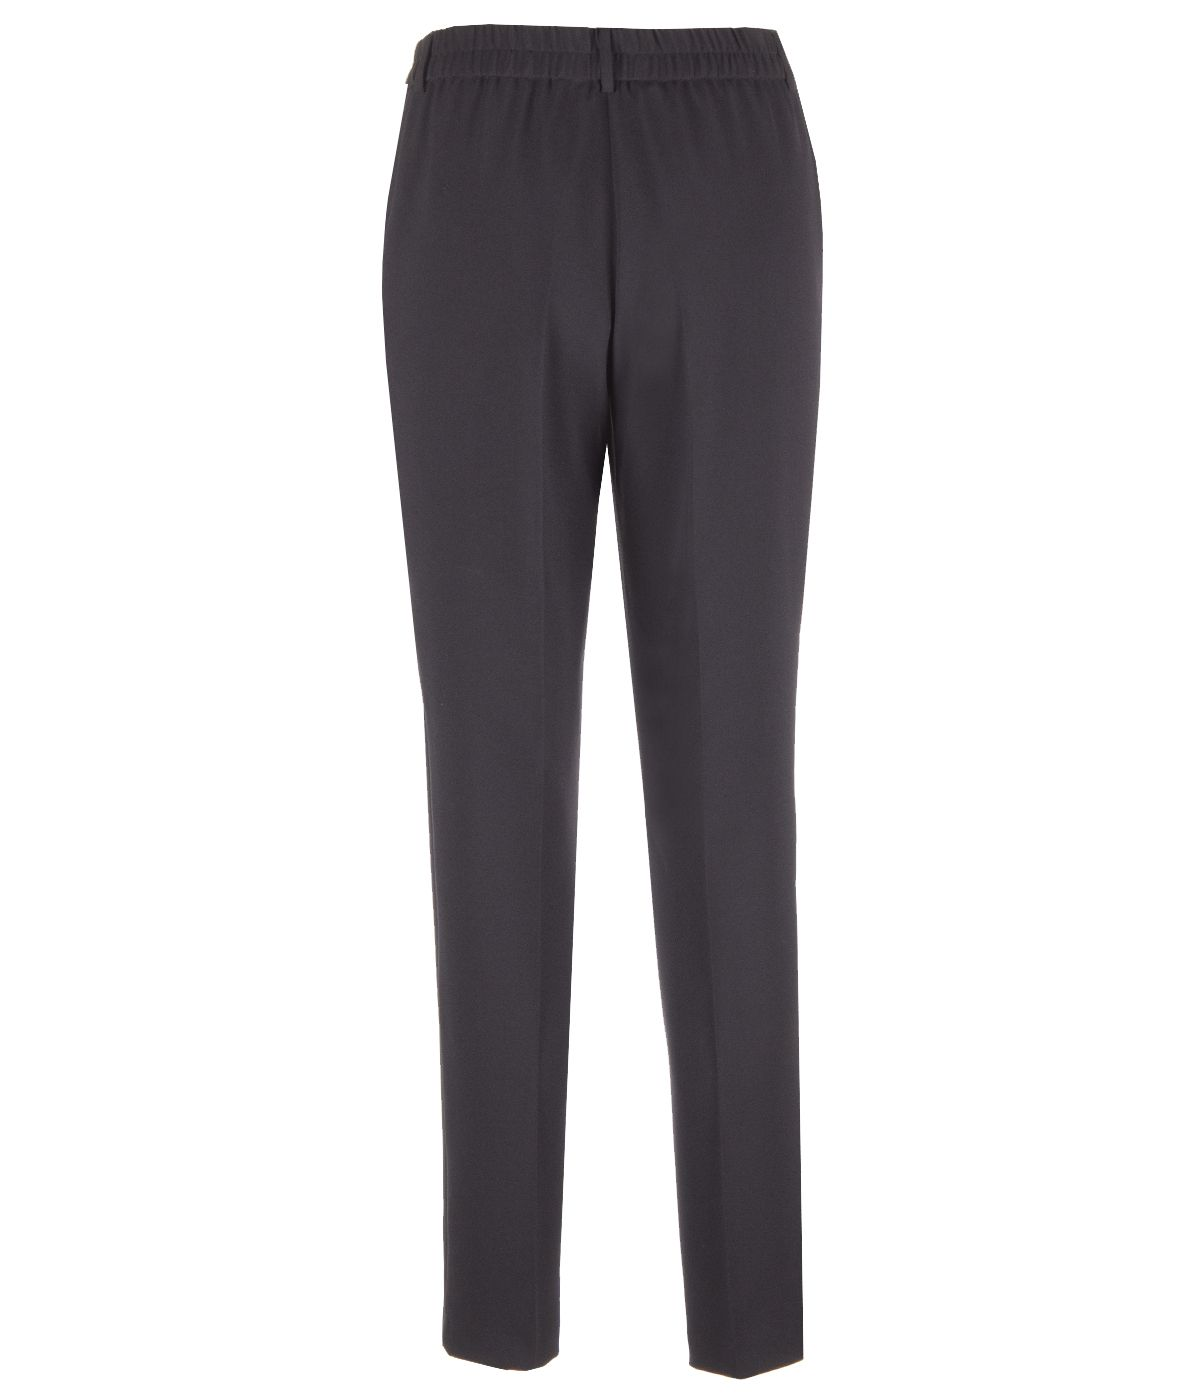 CLASSIC BLACK TROUSERS 1